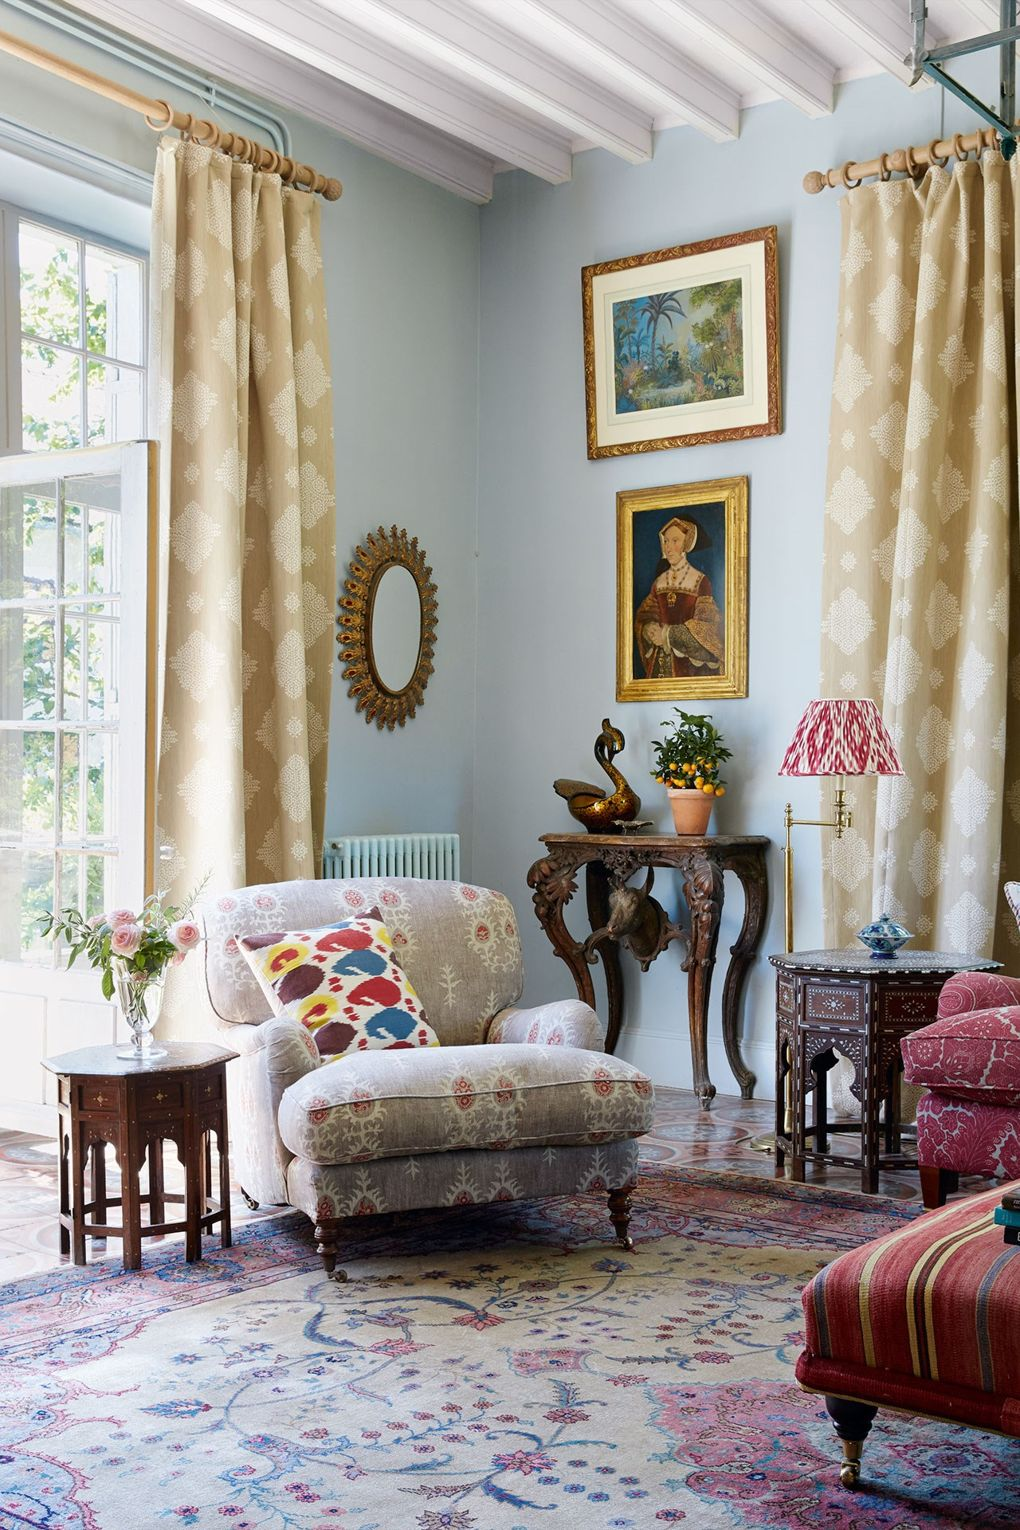 """Susan's French Country home featured in """"House and Garden U.K."""""""